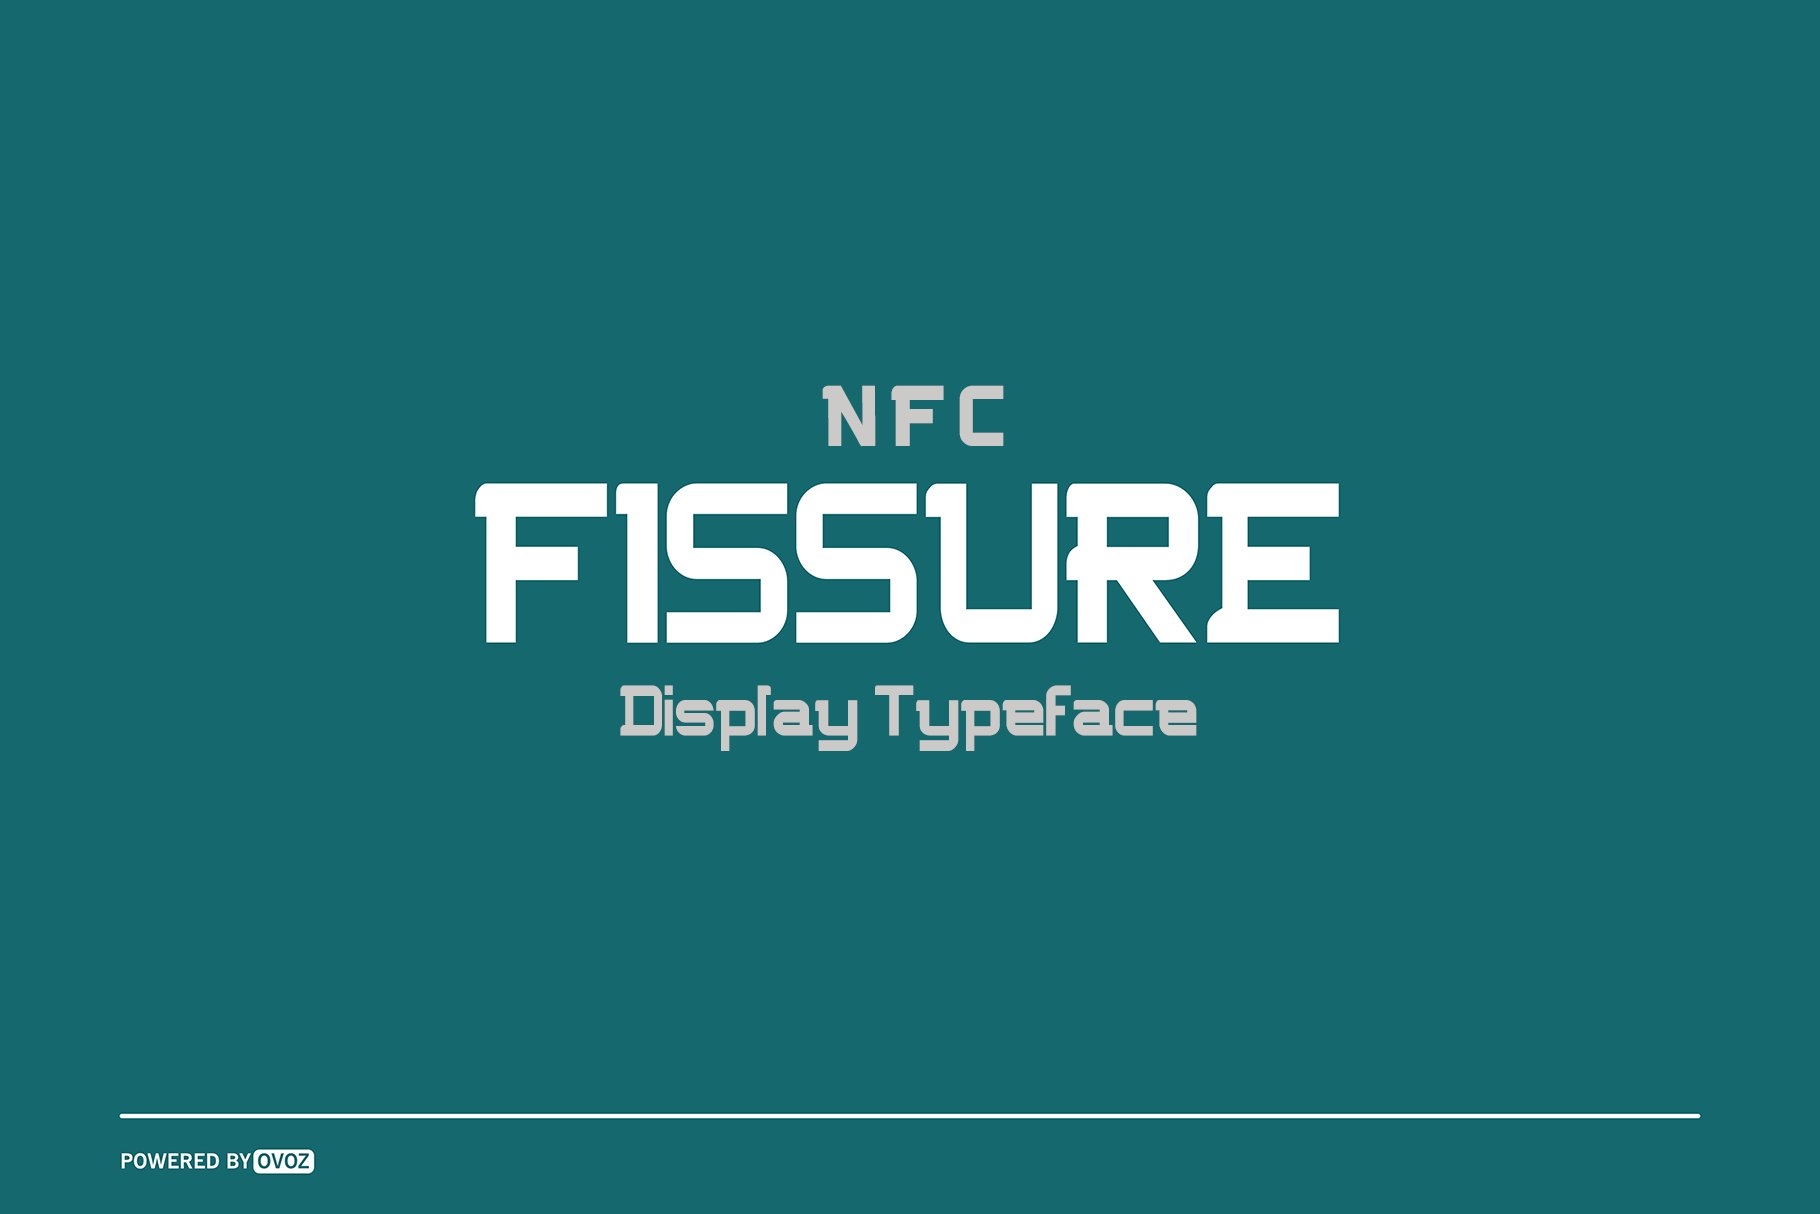 NFC-FISSURE-Typeface